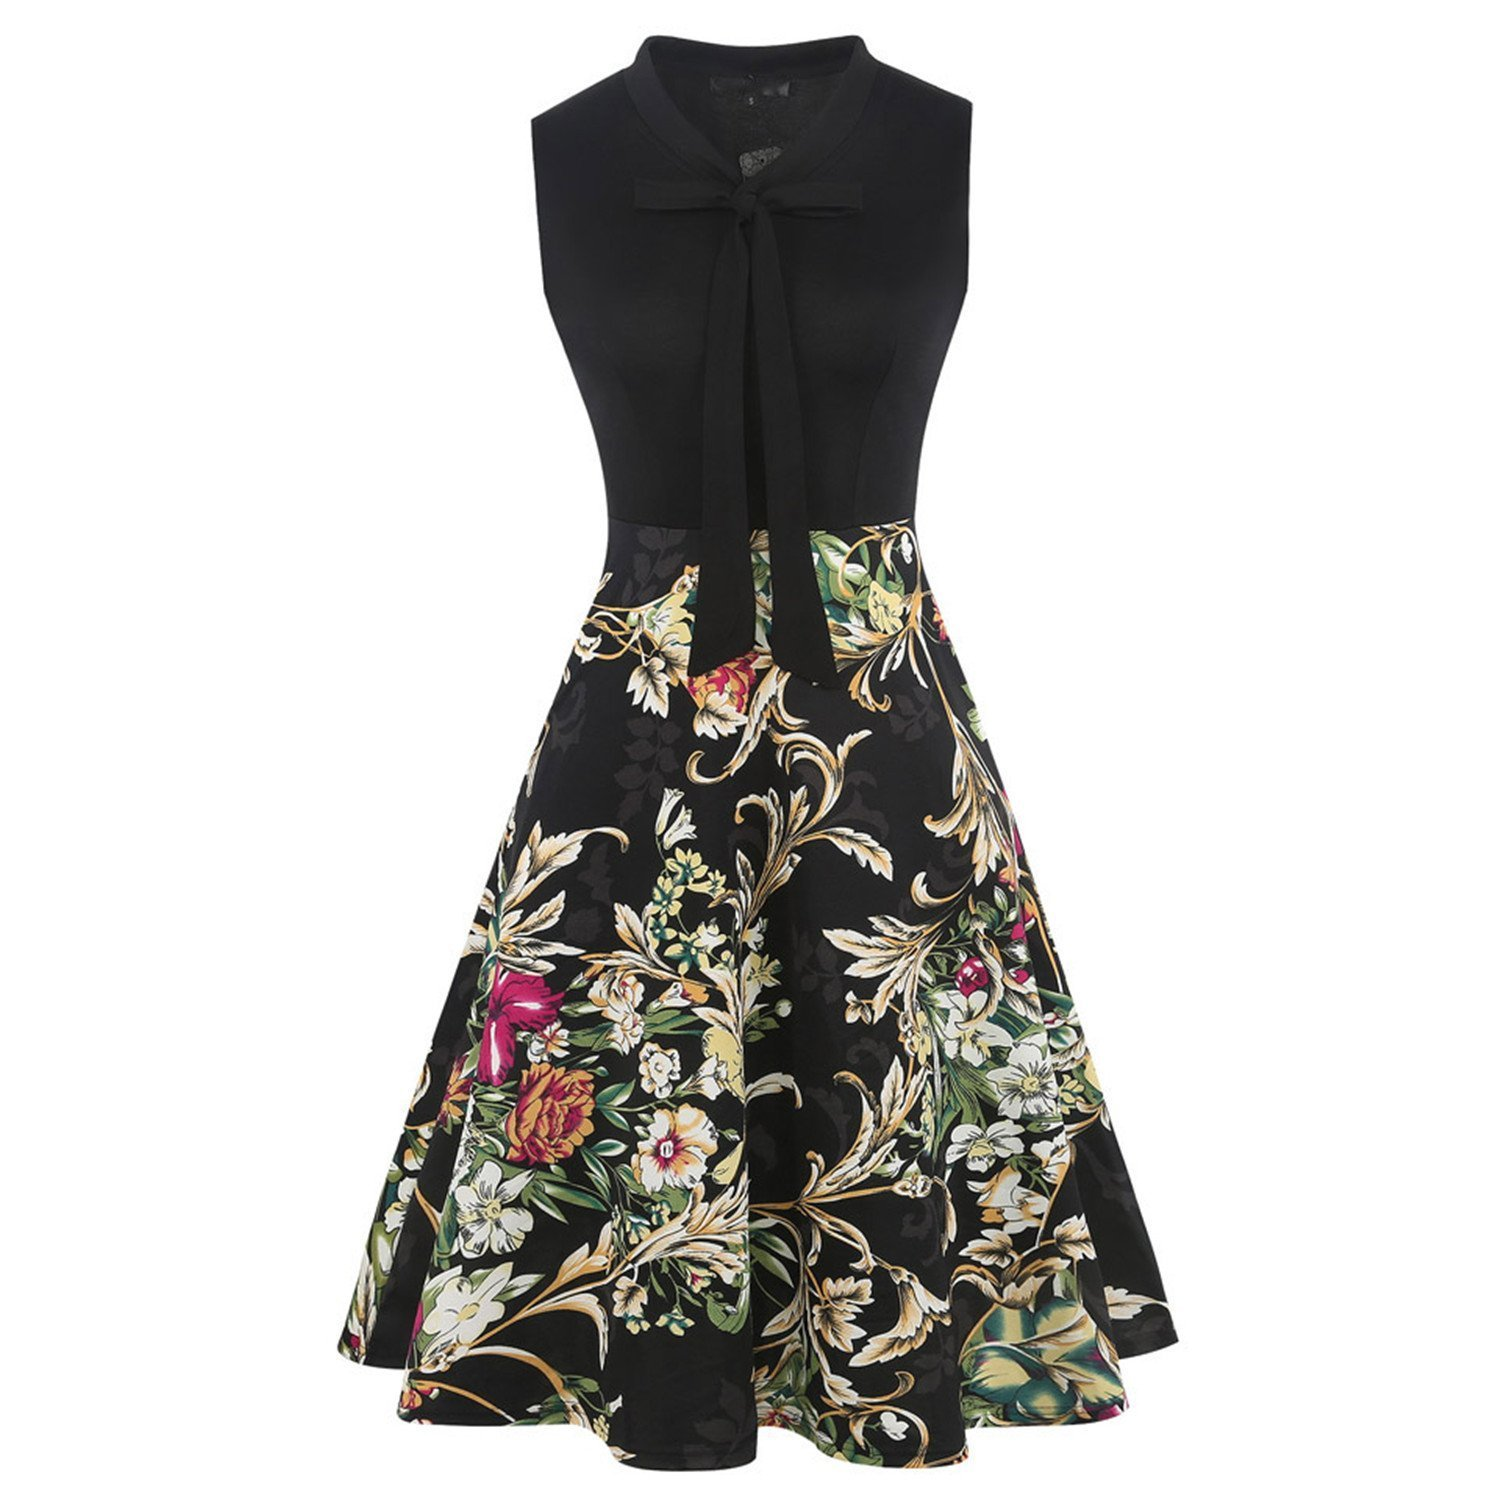 Black N colorful Fp Small Women Polkat Dot Multicolor Floral Dresses Sleeveless A Line Tie Neck Dress